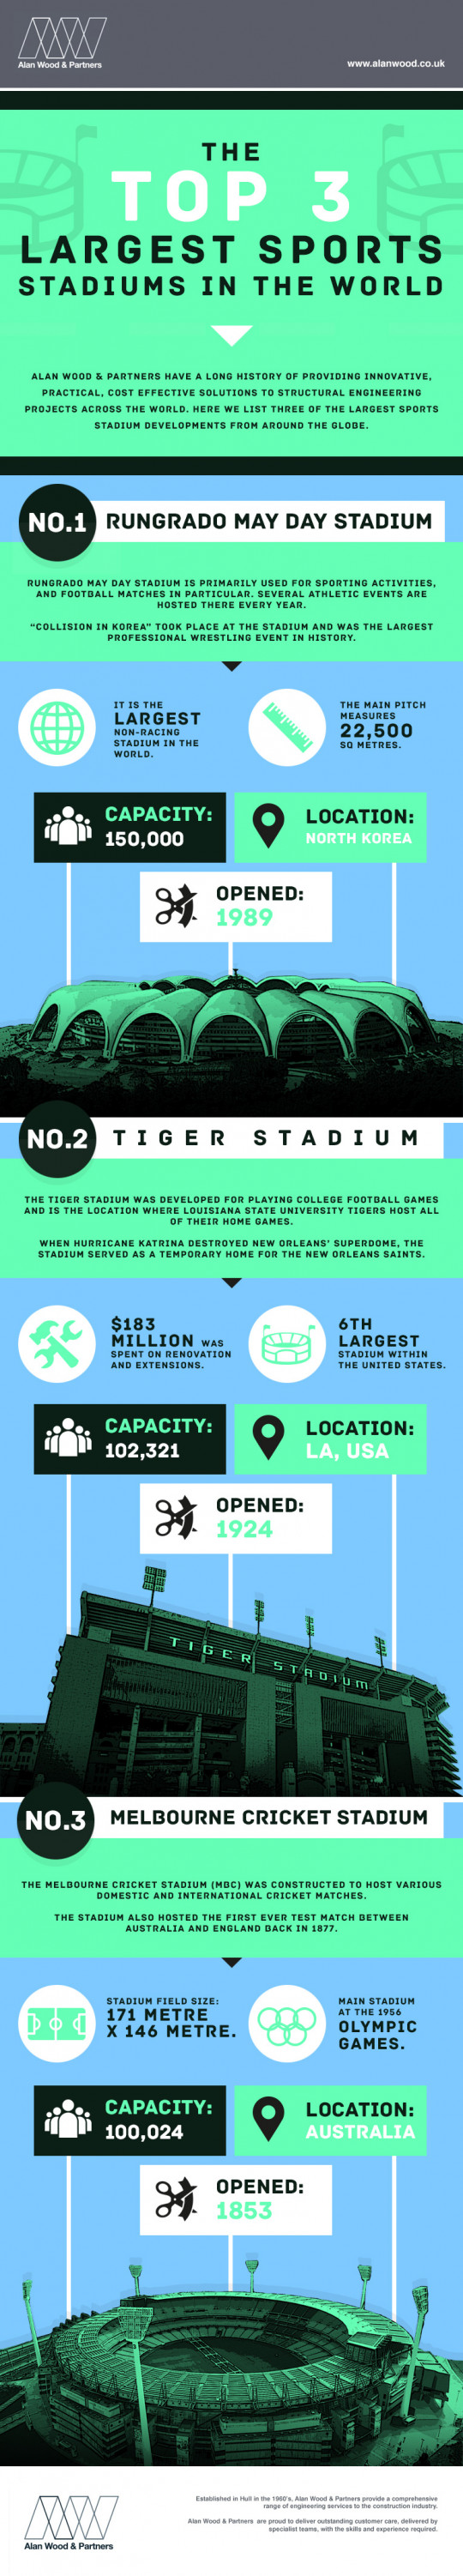 The Top 3 Largest Sports Stadiums in the World